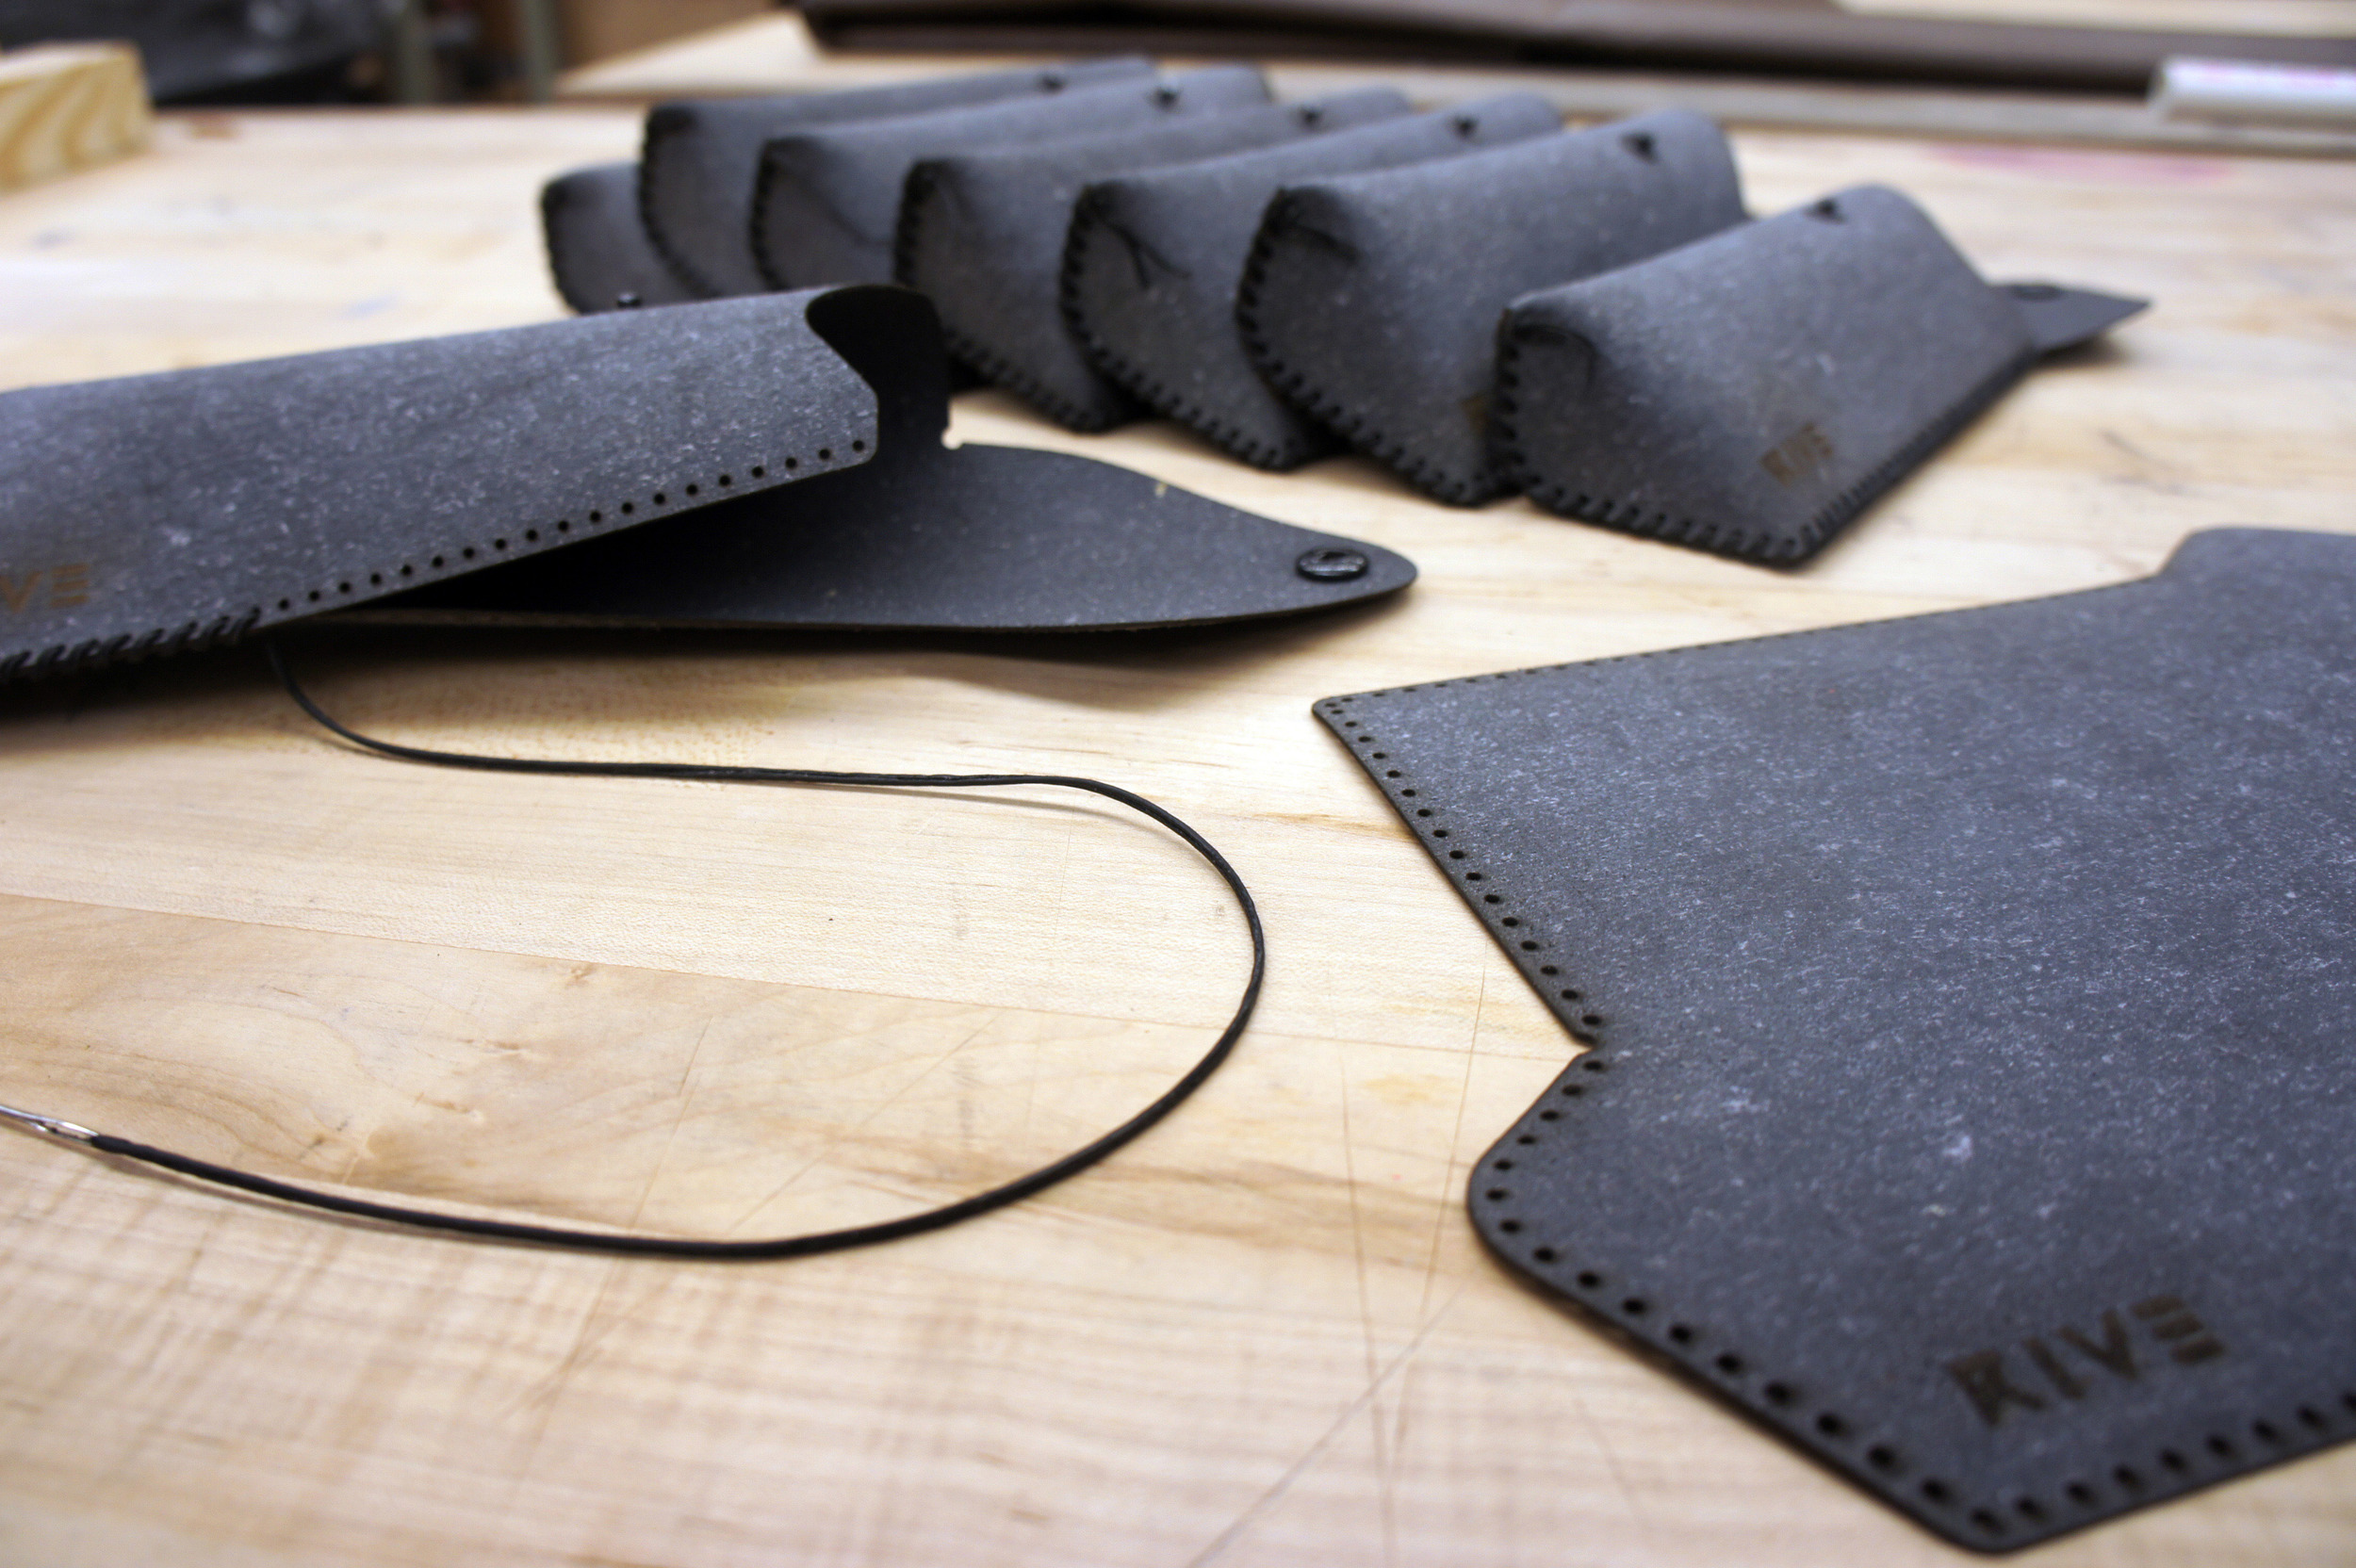 stitching the cases